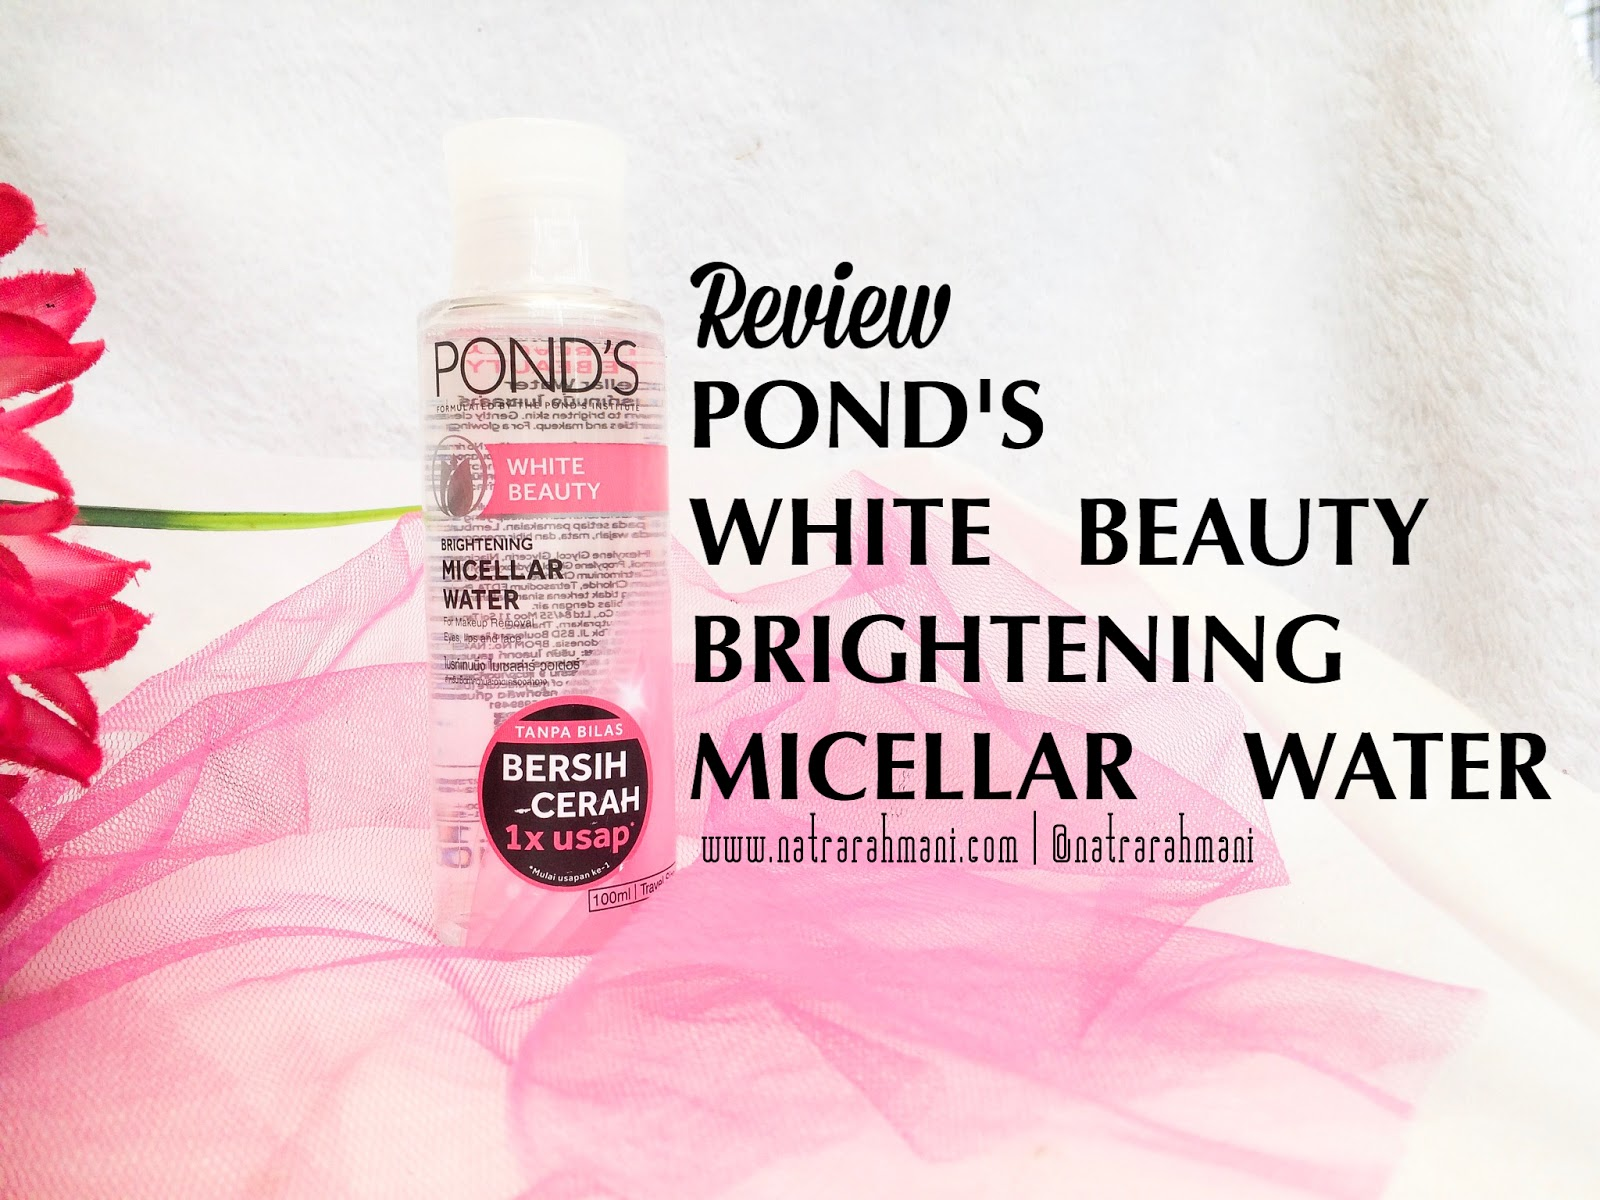 ponds-white-beauty-brightening-micellar-water-review-natrarahmani